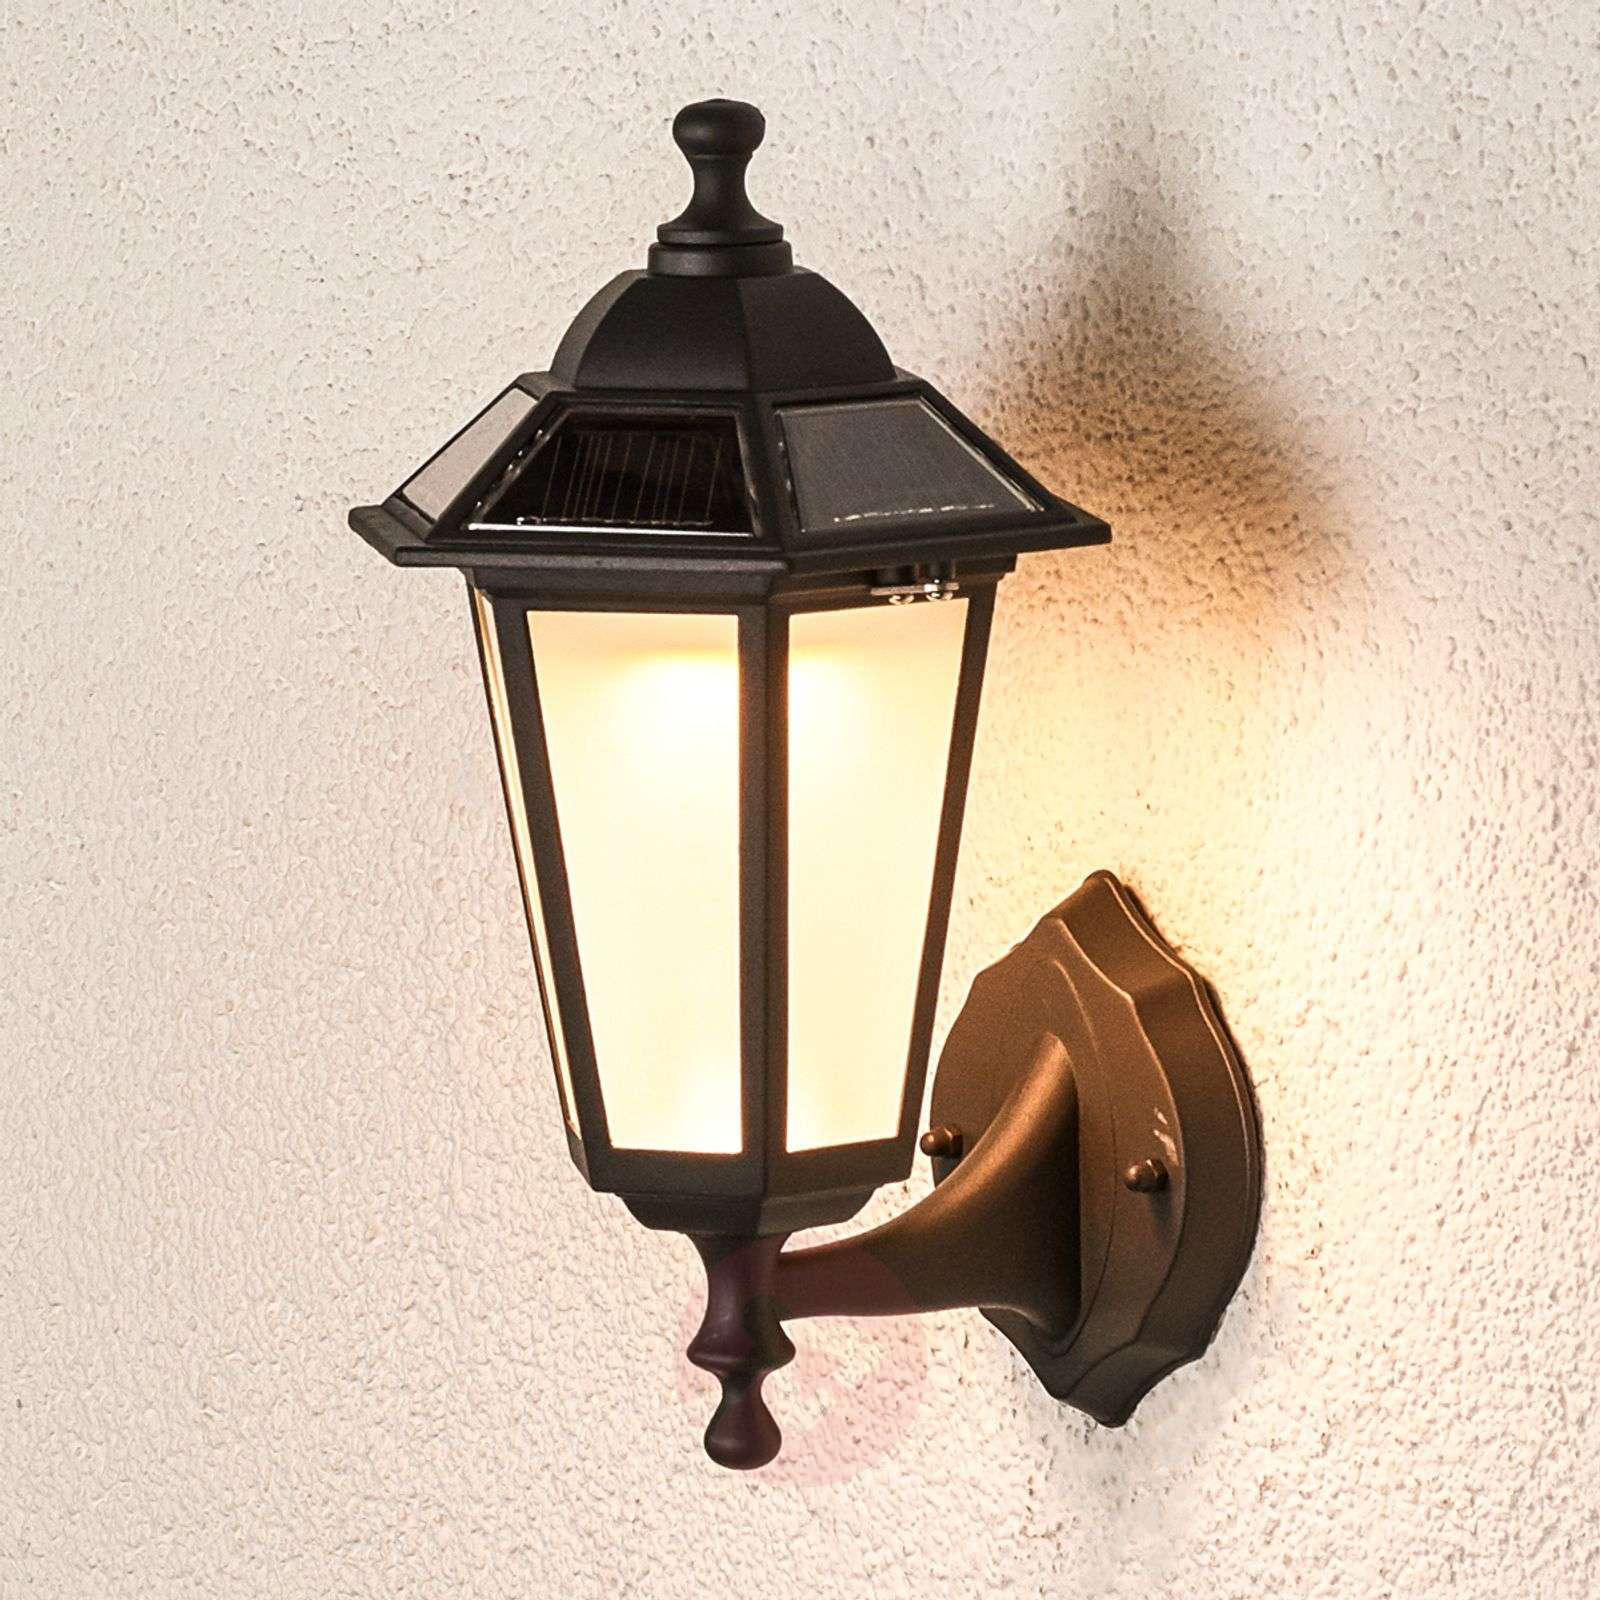 Solar Wall Lamps Outdoor : Solar Kristin LED outdoor wall light Lights.co.uk